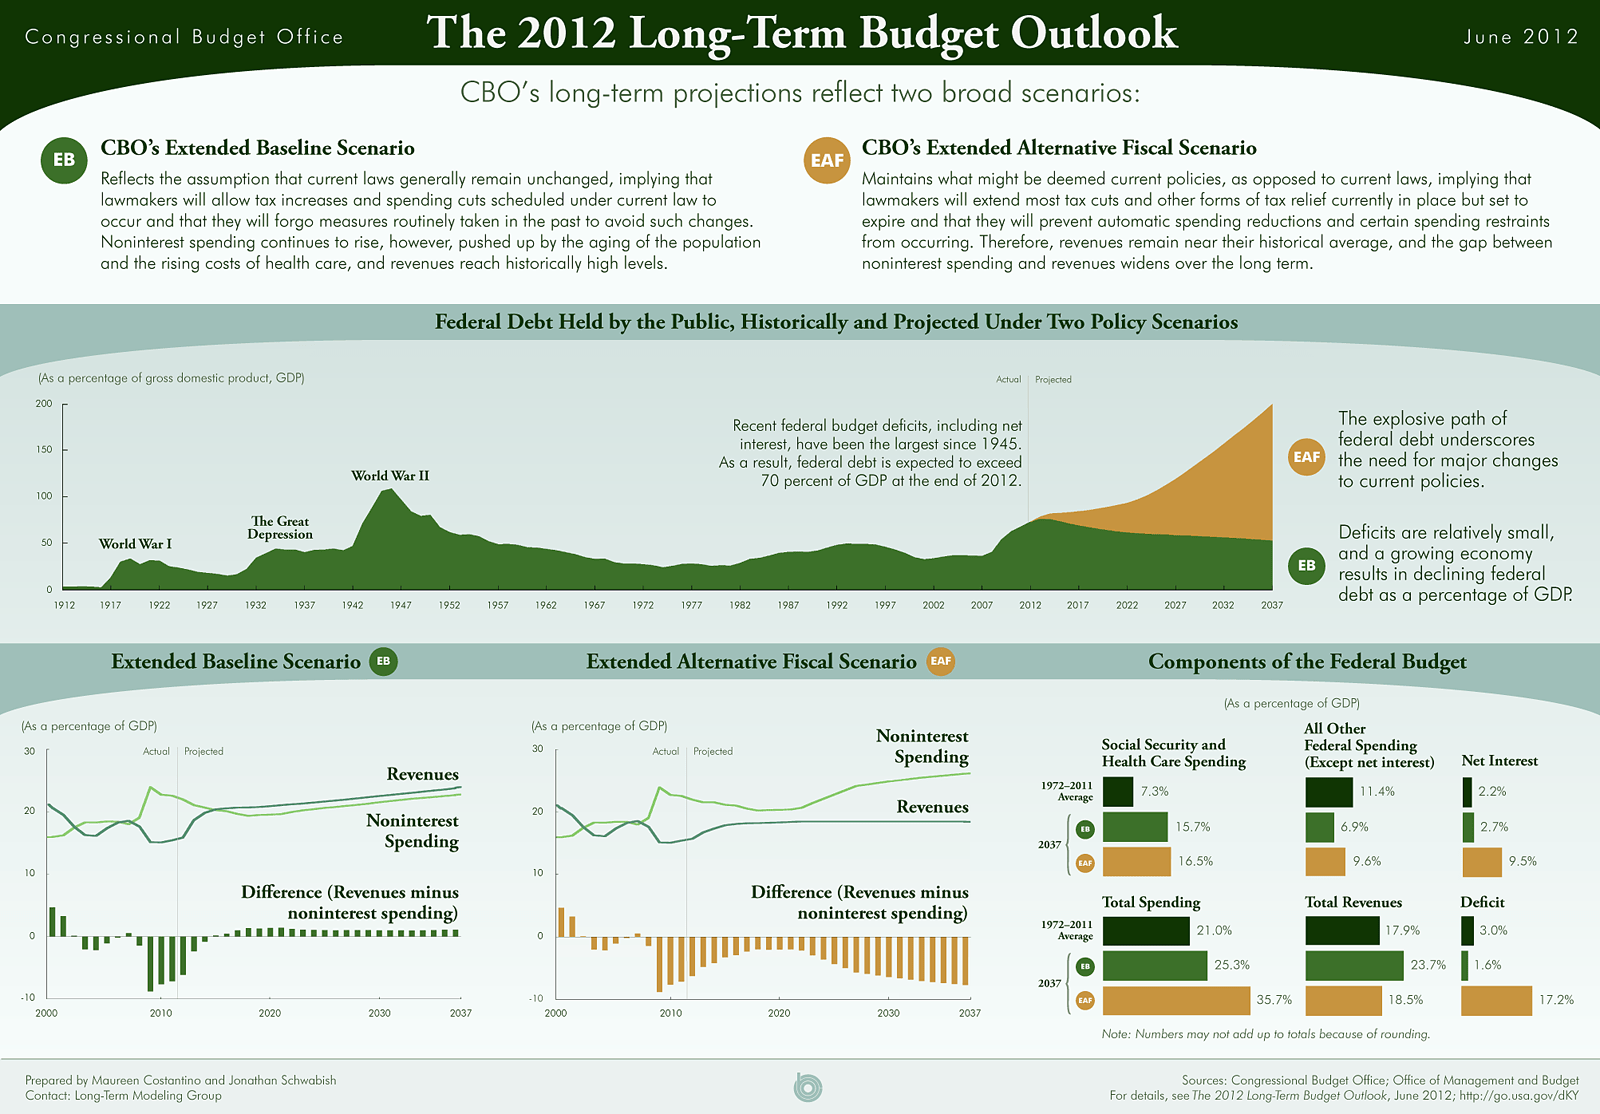 43289-land-LTBOinfographic_1